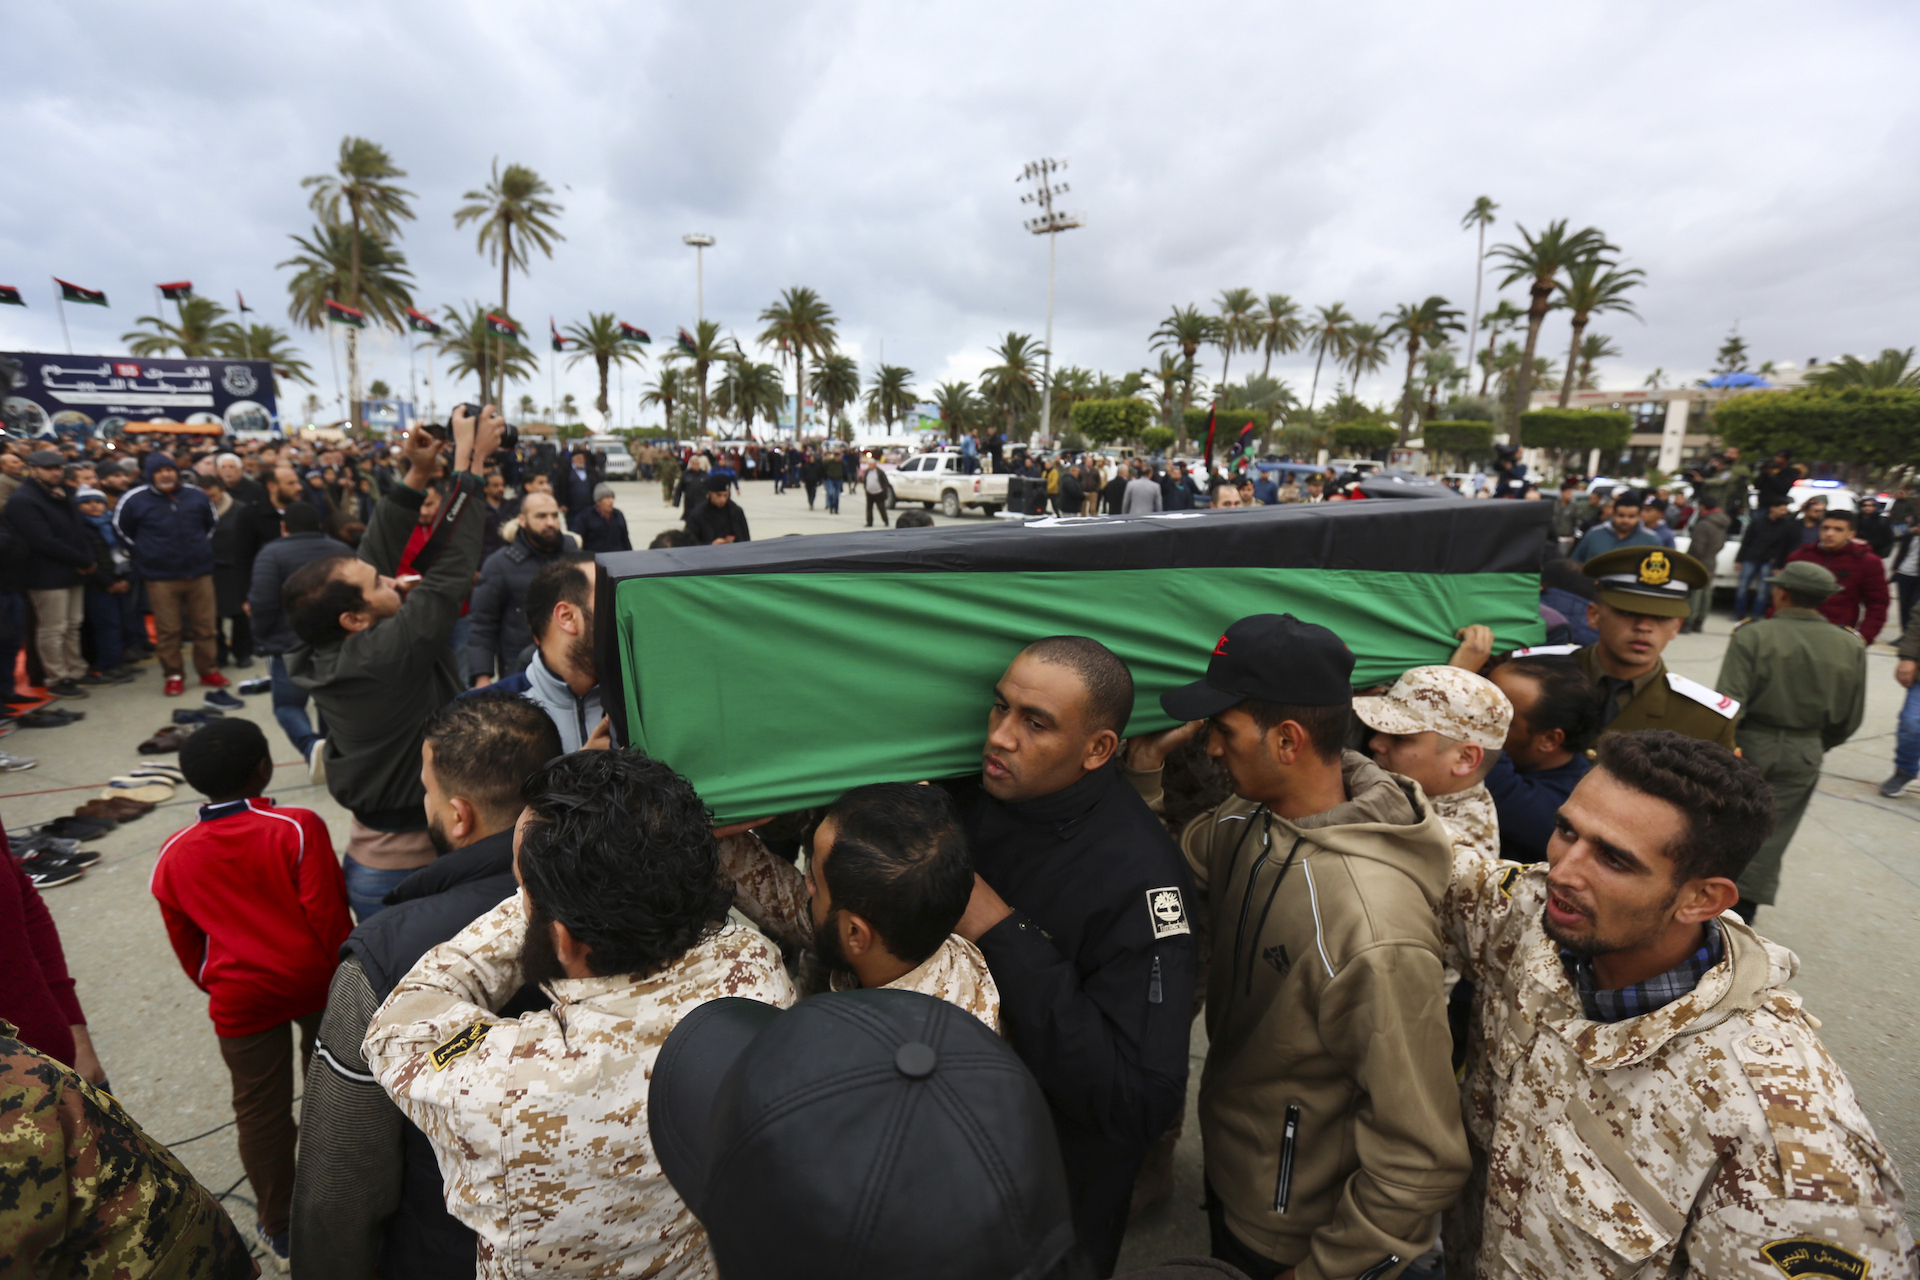 UN warns countries have breached arms embargo agreed at Libya summit